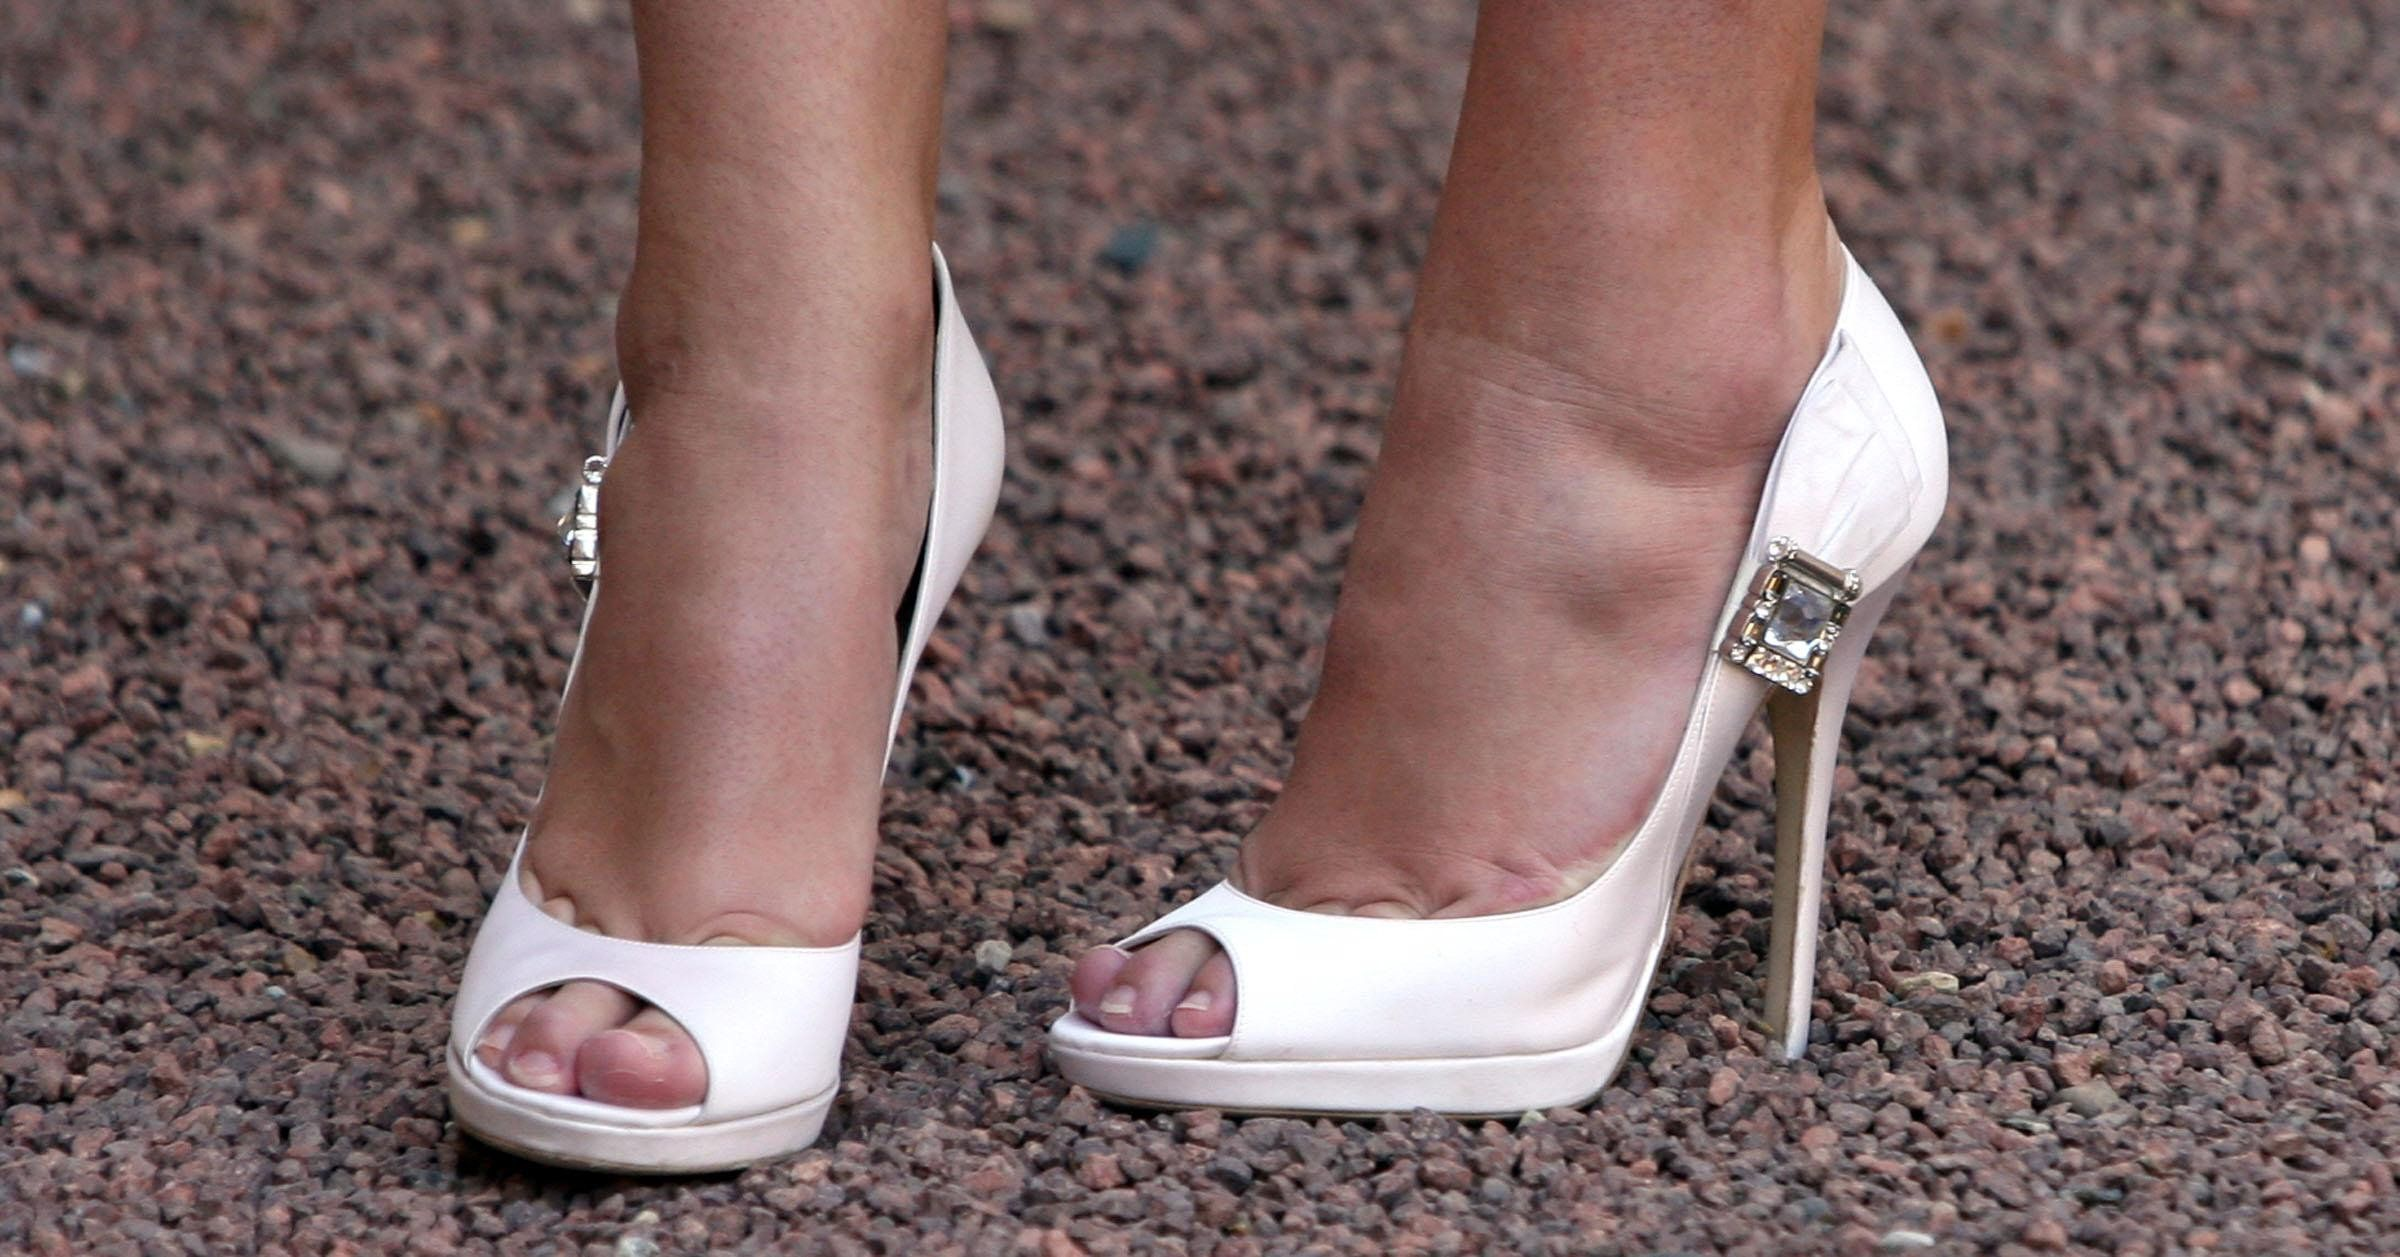 A close-up view of the Jimmy Choo shoes worn by Double Olympic champion Rebecca Adlington as she received her OBE from Queen Elizabeth II during investitures at Buckingham Palace.